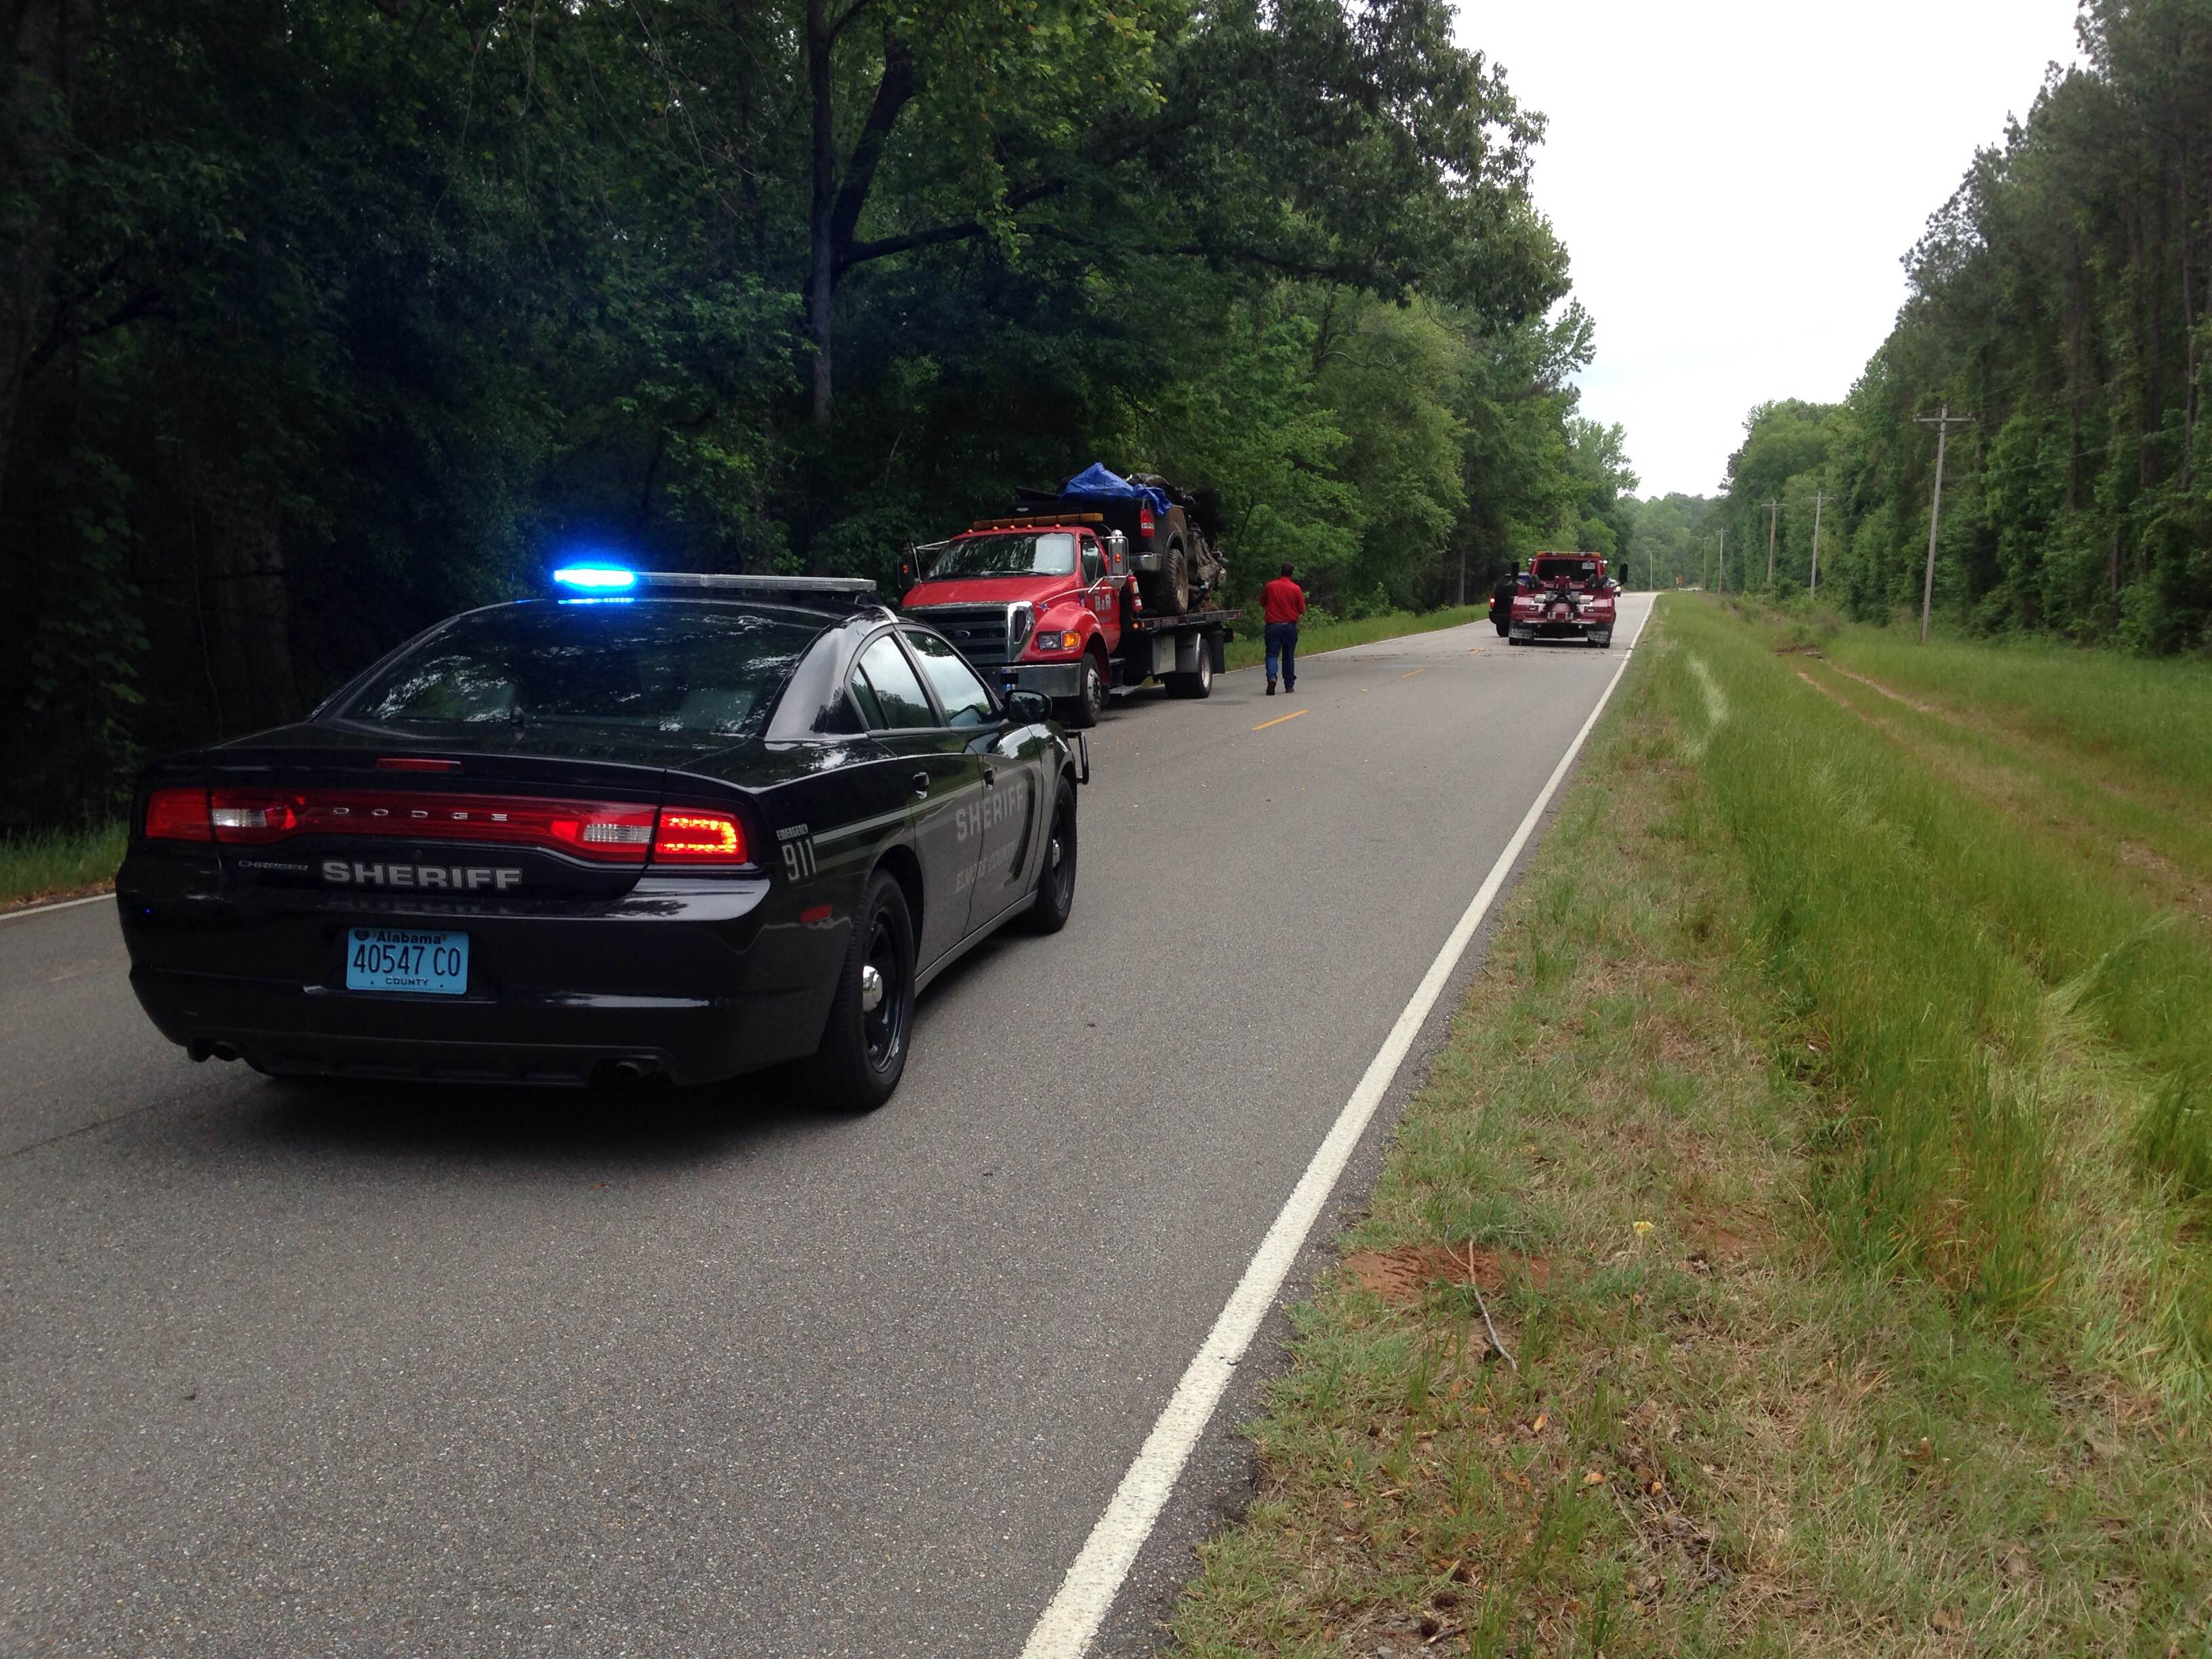 Fatal Accident In Alabama Yesterday